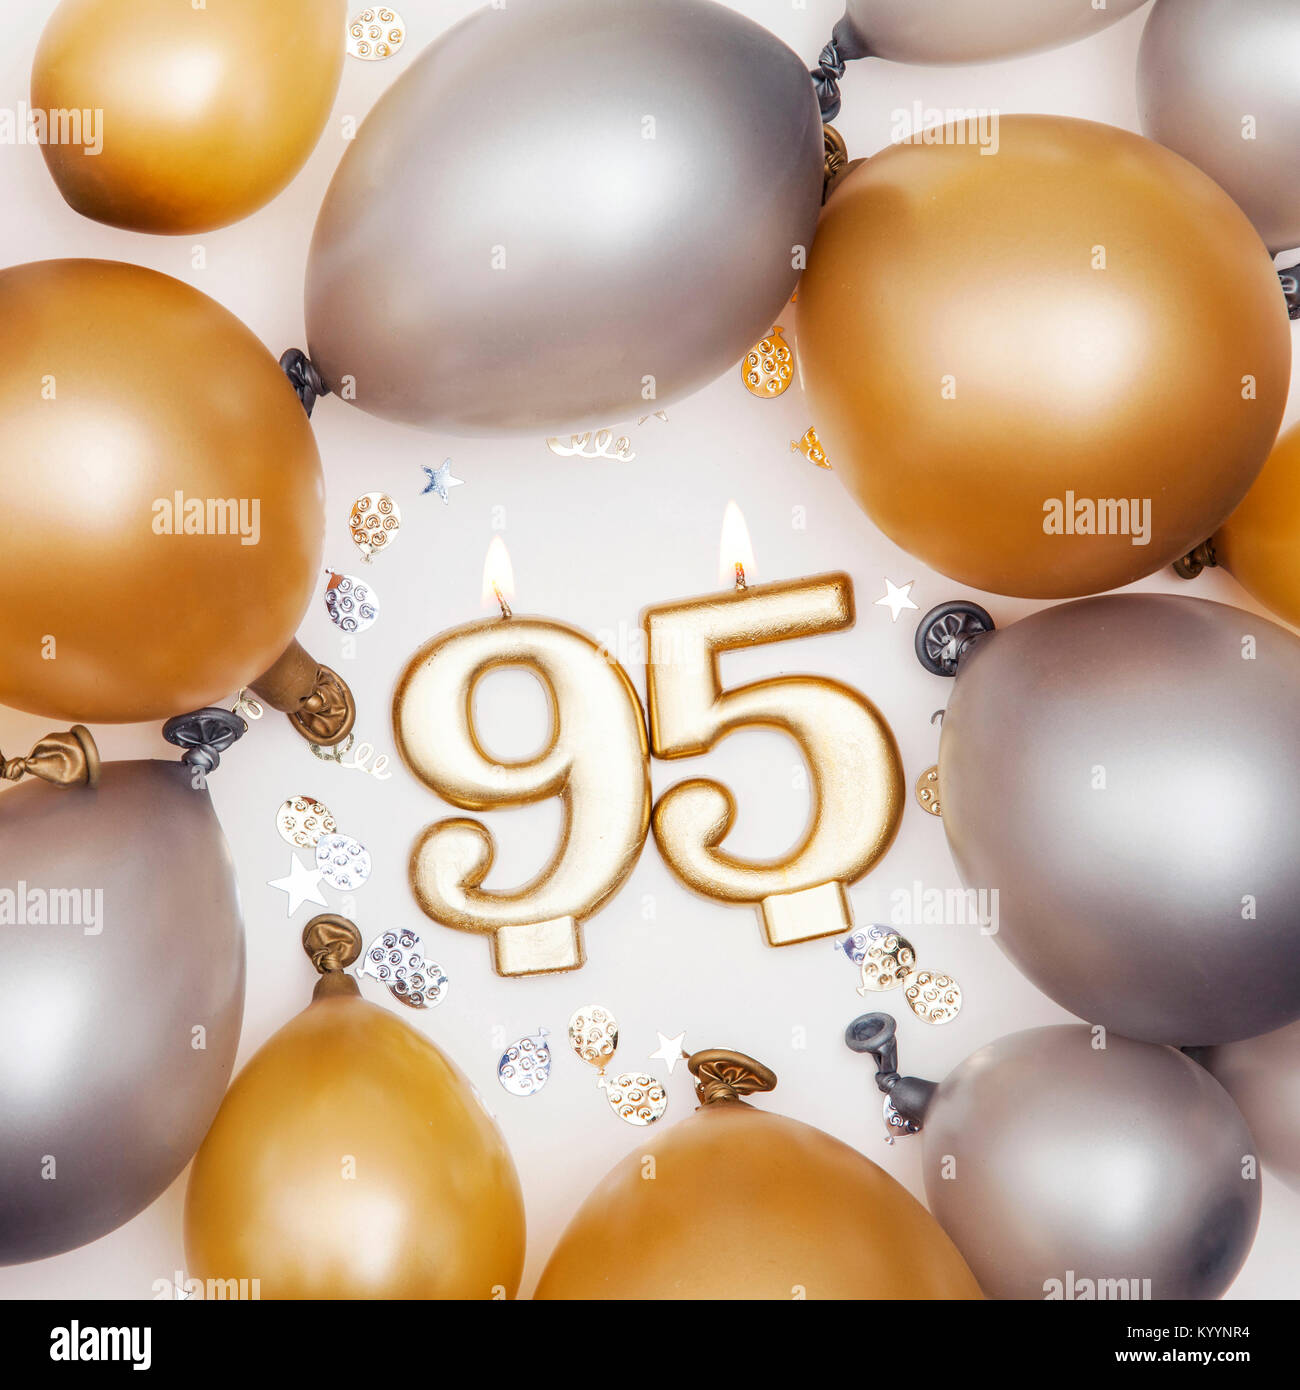 Birthday Celebration Number 95 Candle With Gold And Silver Balloons